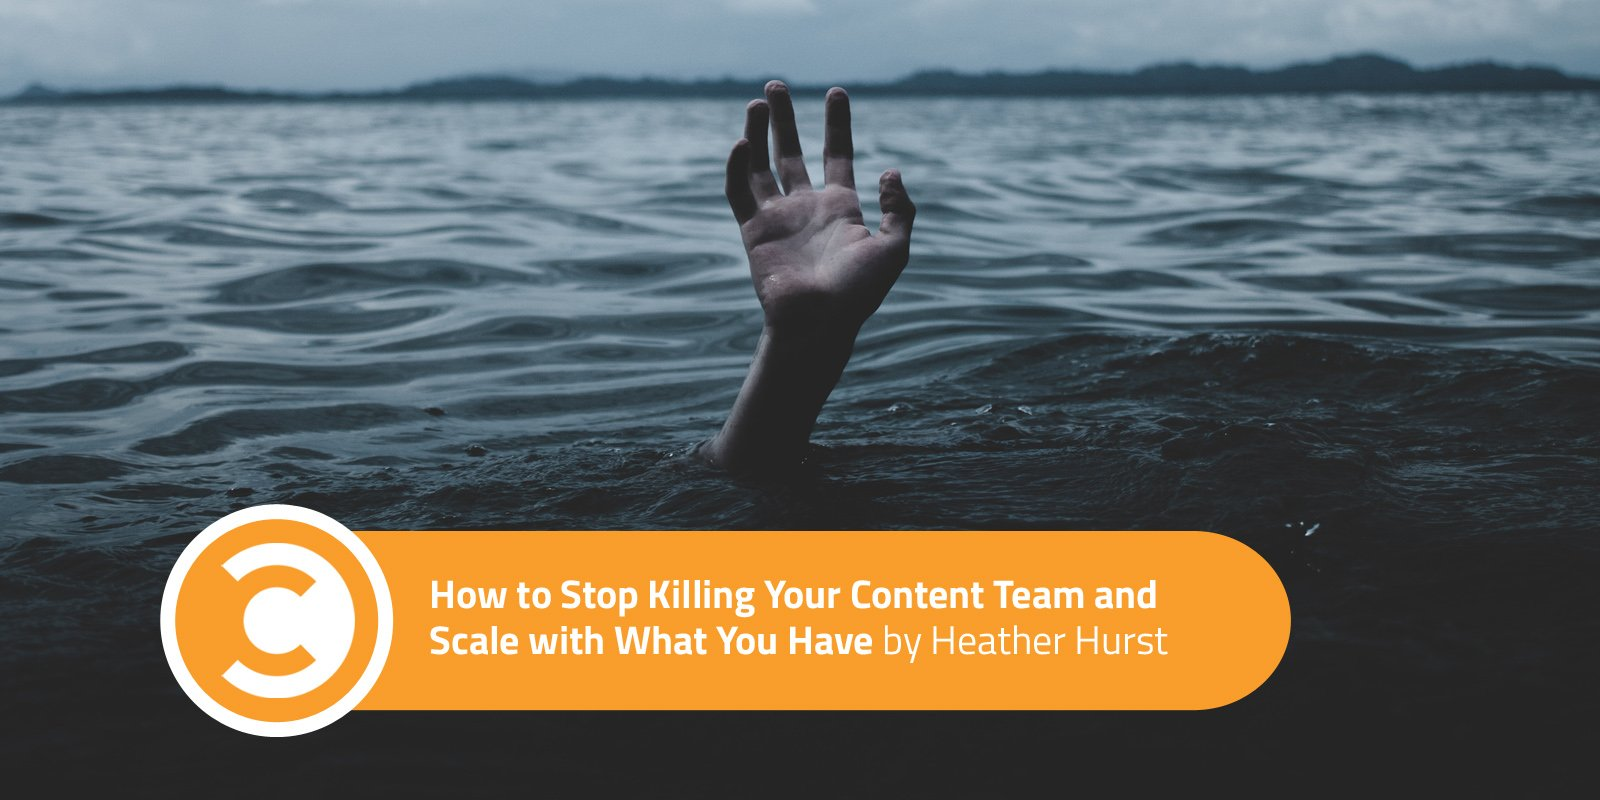 How to Stop Killing Your Content Team and Scale with What You Have